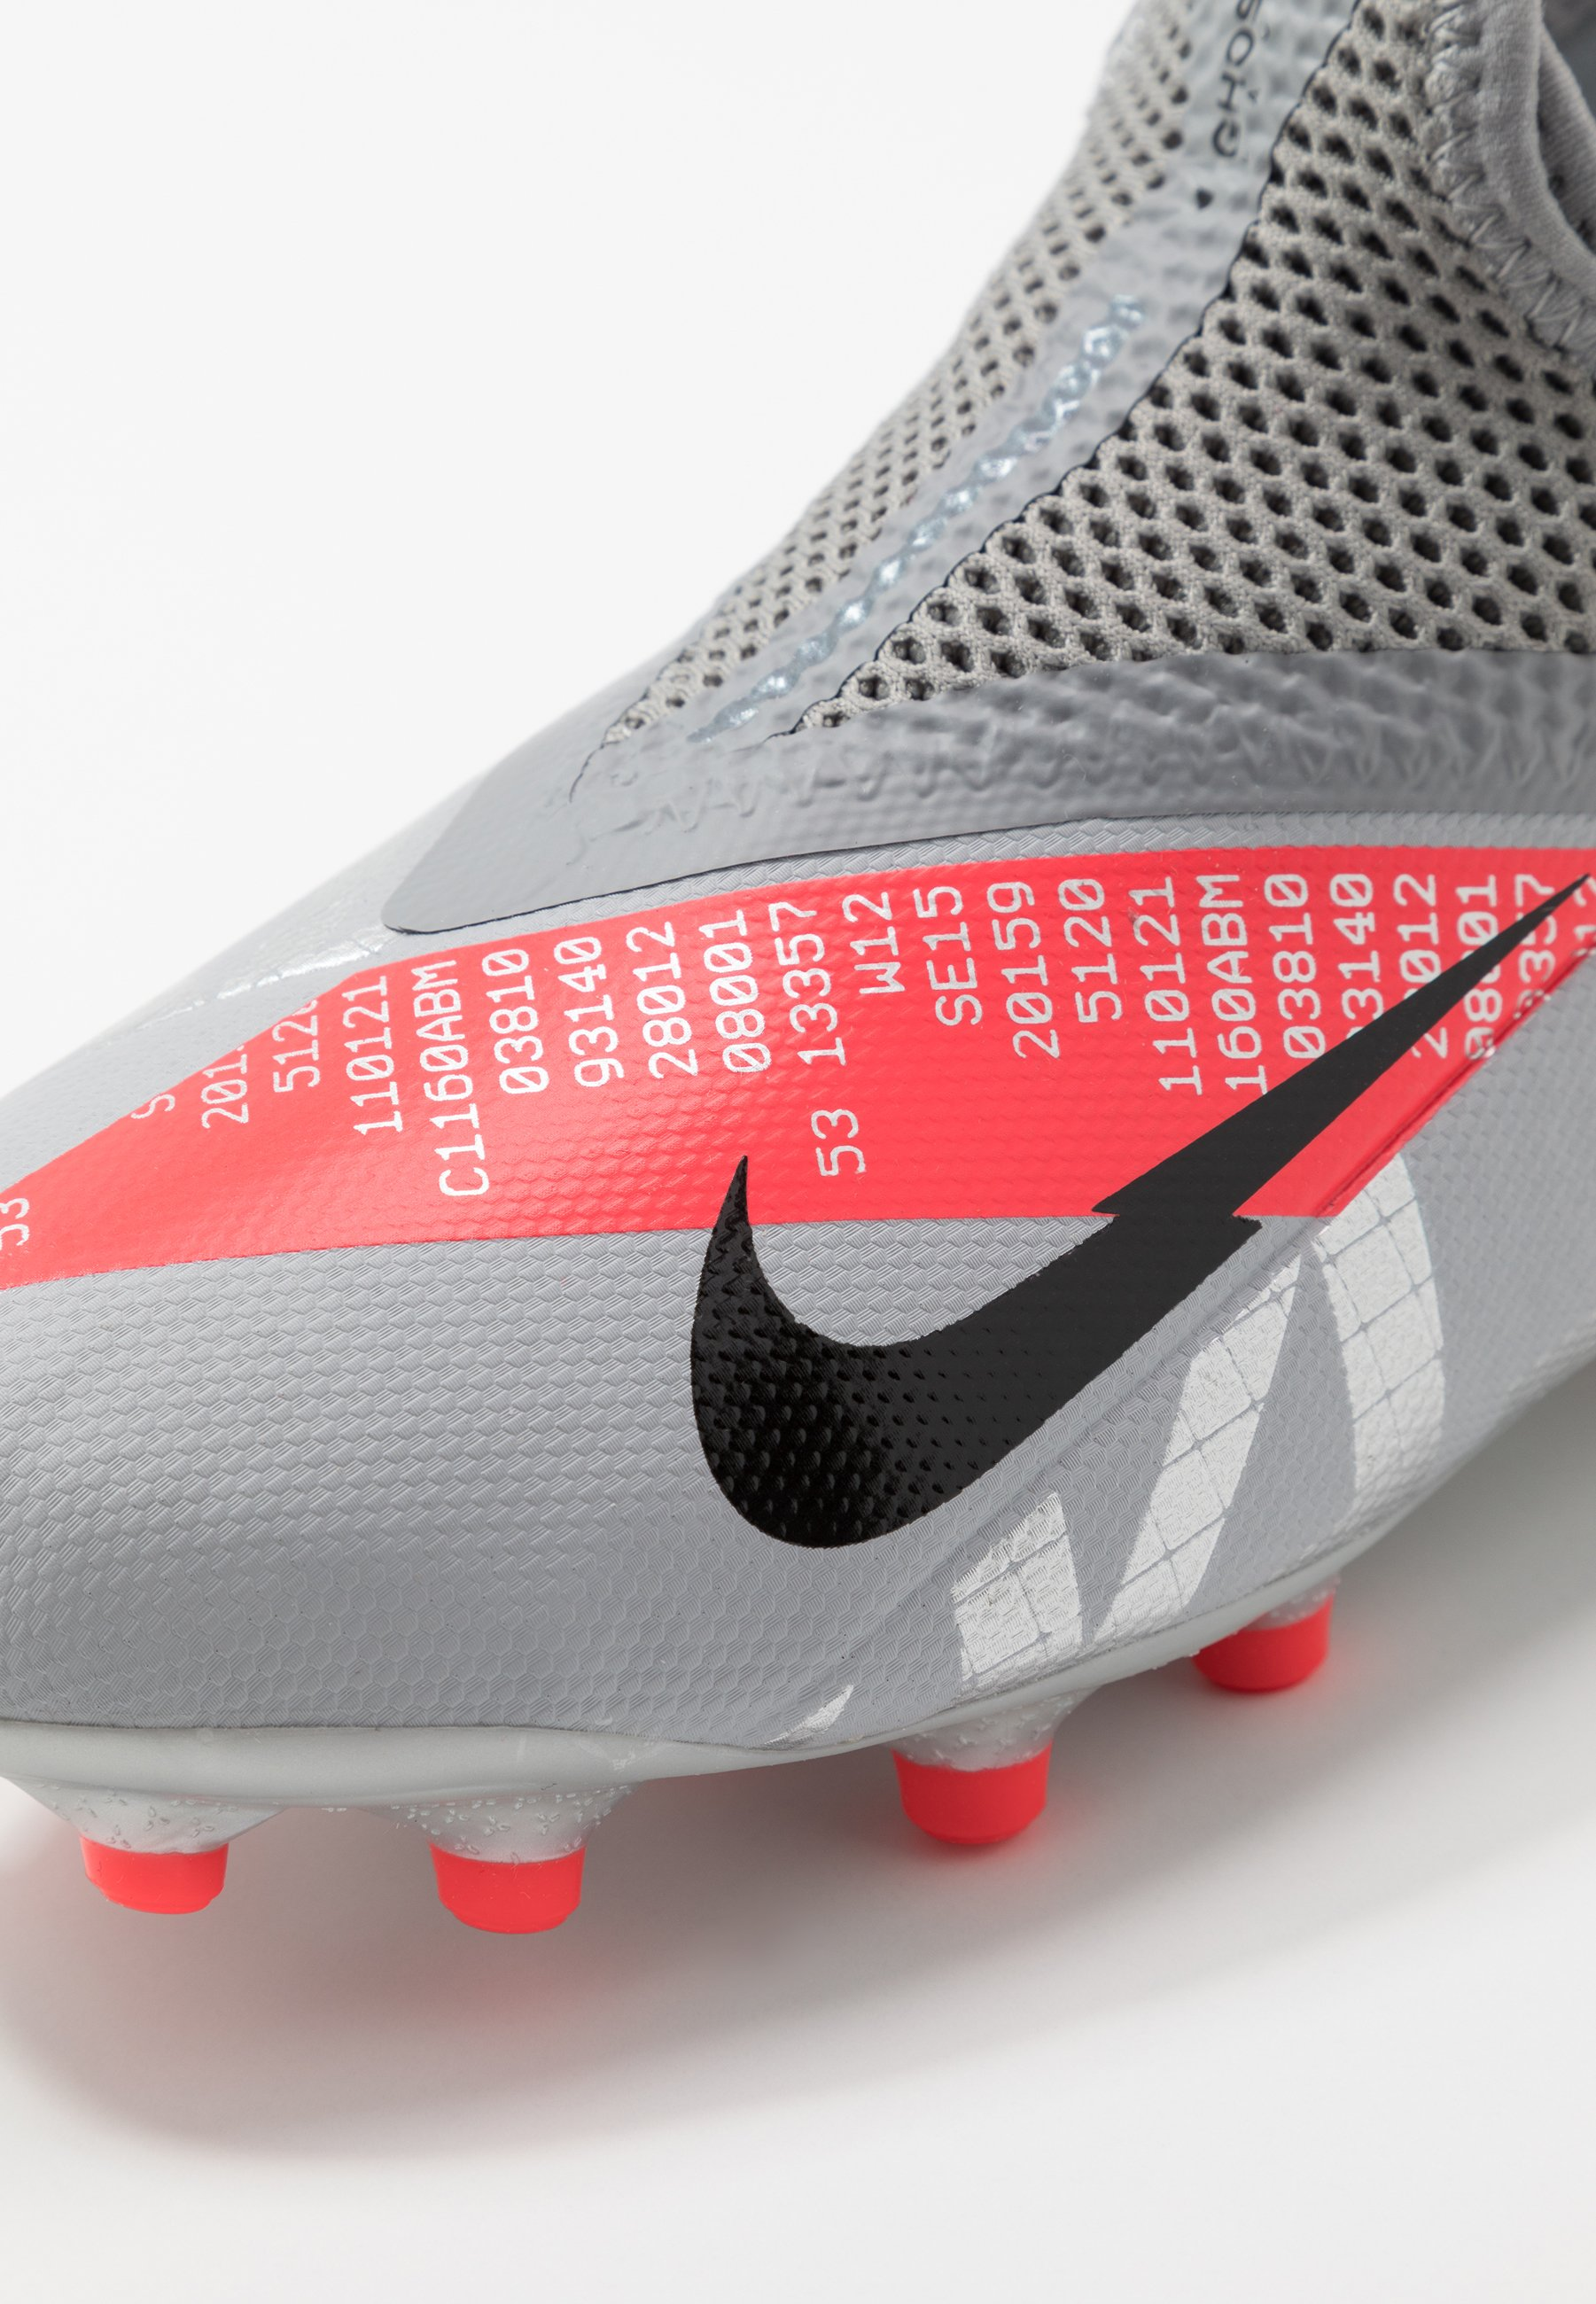 PHANTOM VISION 2 ACADEMY FGMG Chaussures de foot à crampons metallic bomber greyblackparticle grey